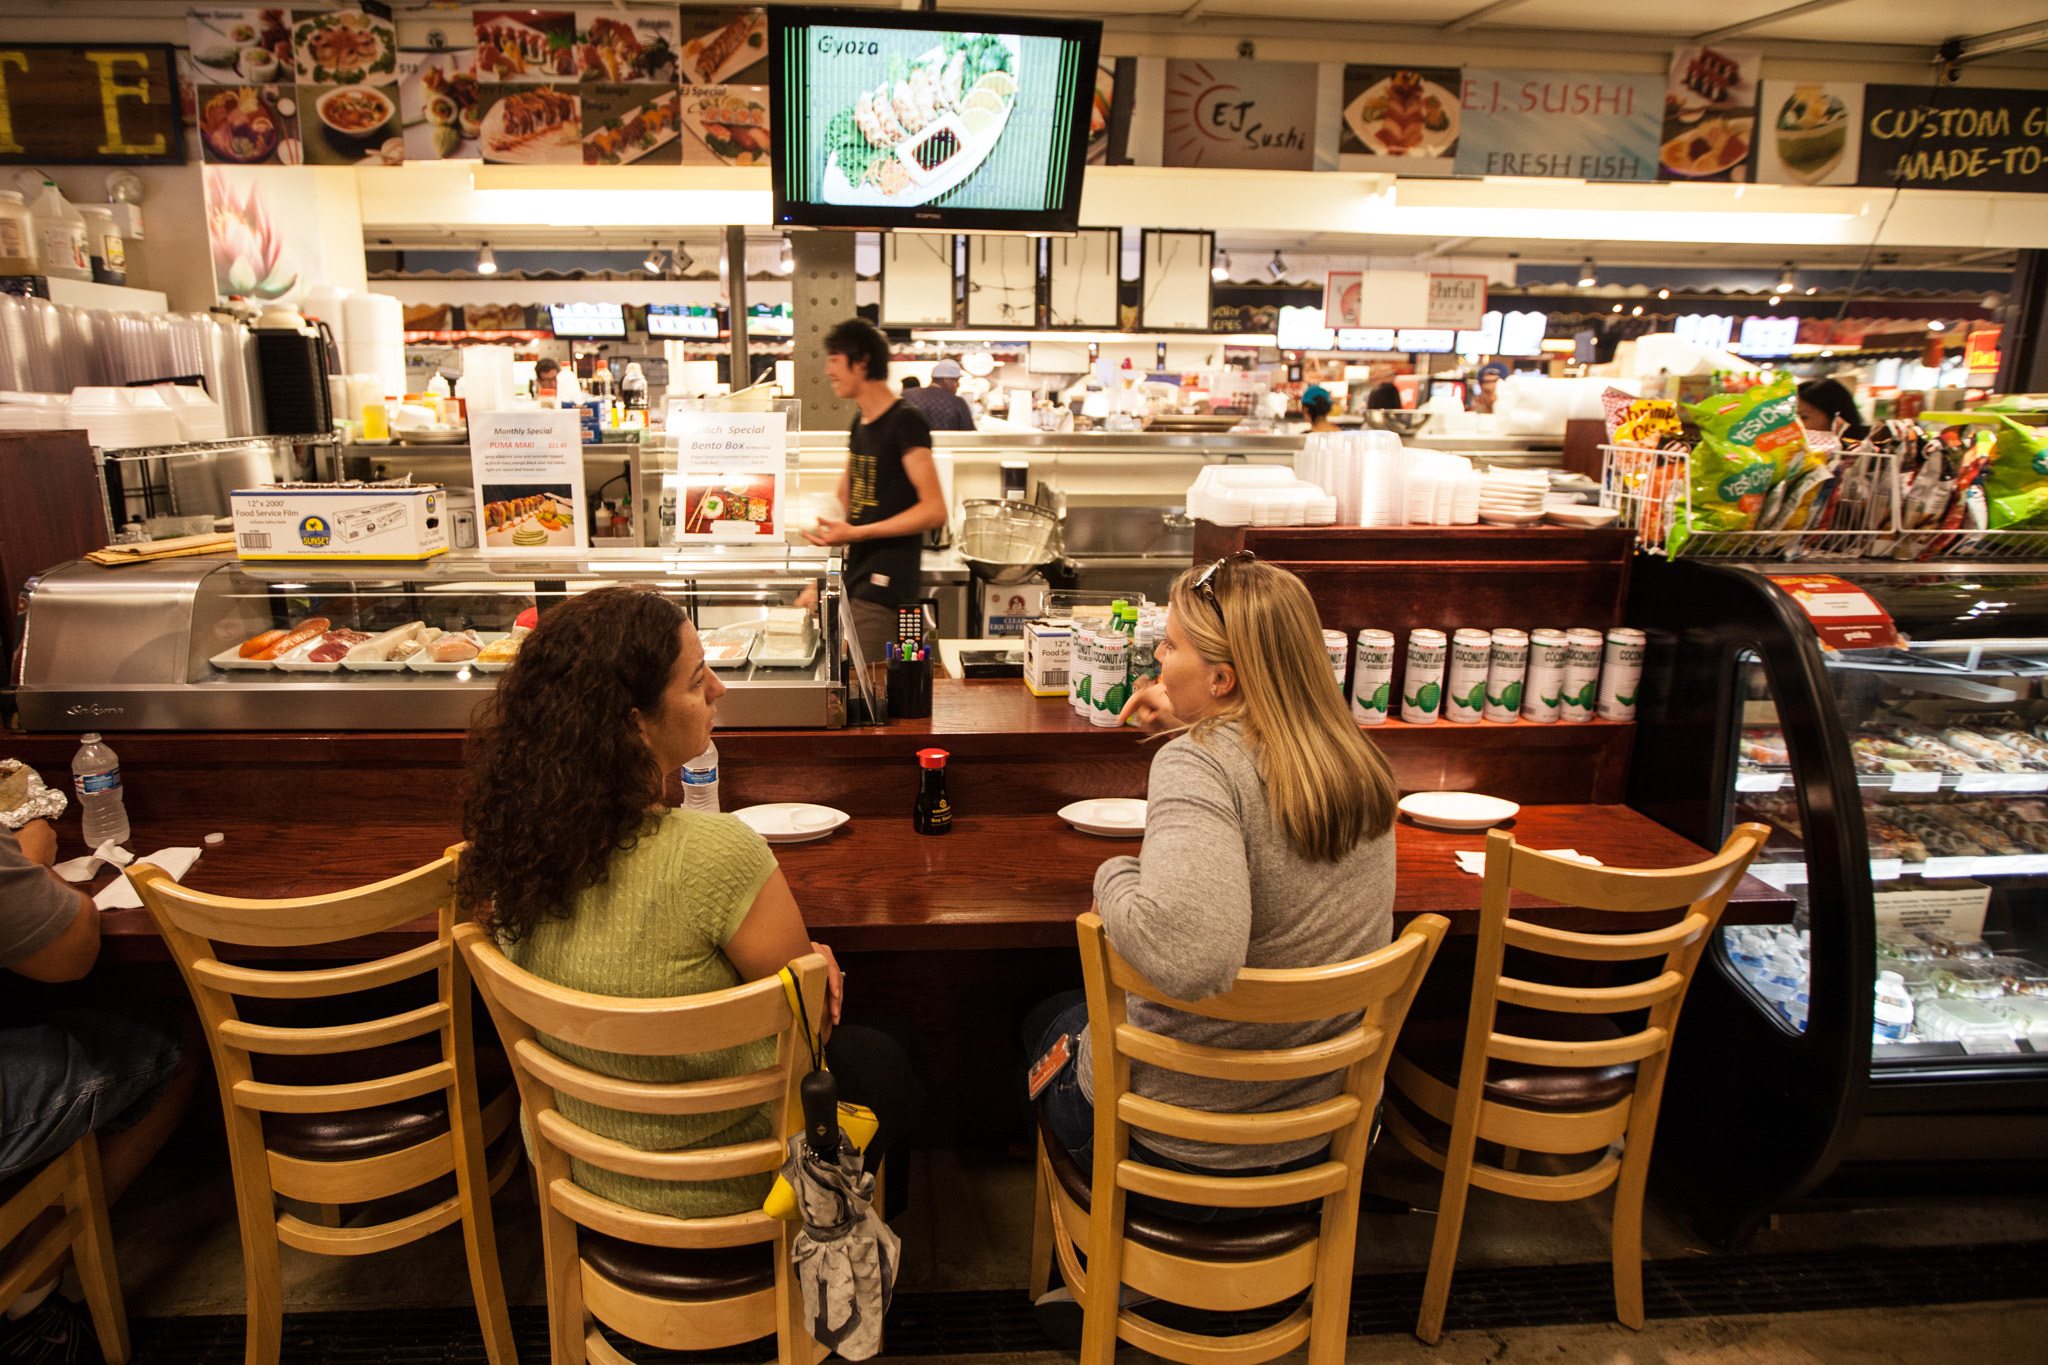 EJ Sushi is located in the French Market.